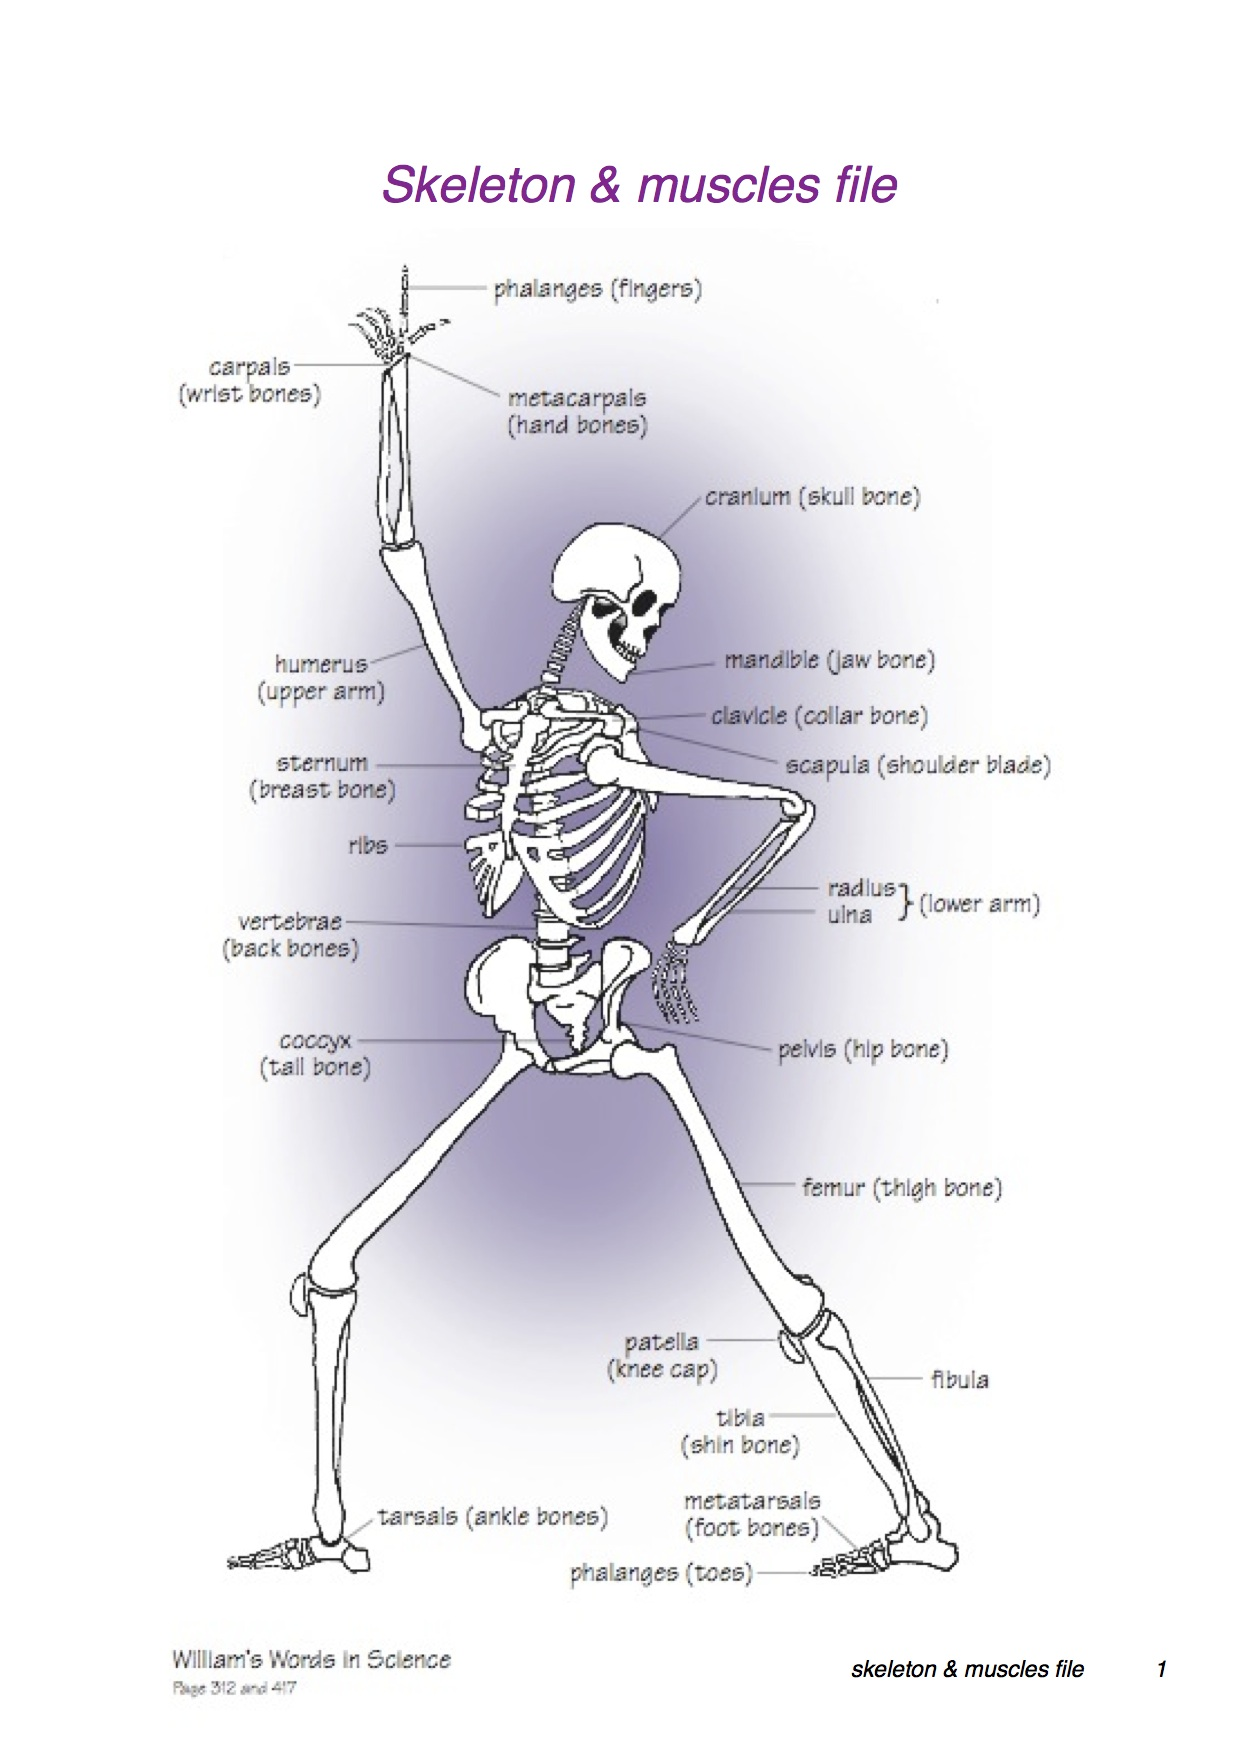 Buy Skeleton Muscles File A Triangle Of Learning Knowledge